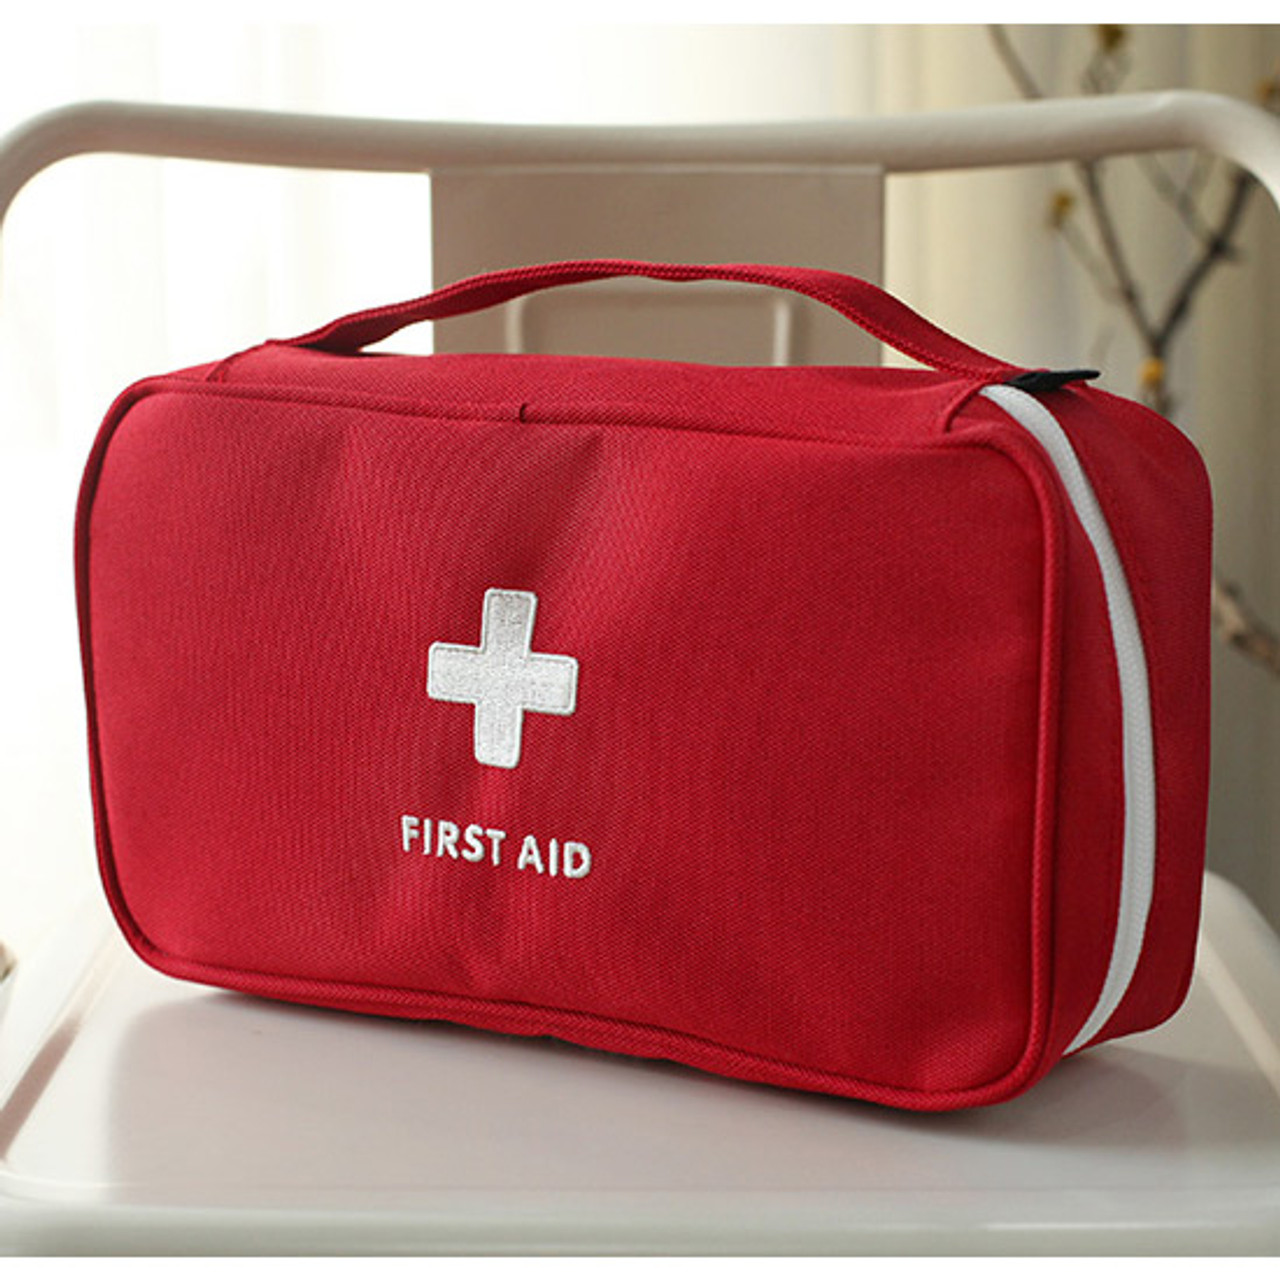 2nul Le Around First Aid Zip Around Large Pouch Fallindesign